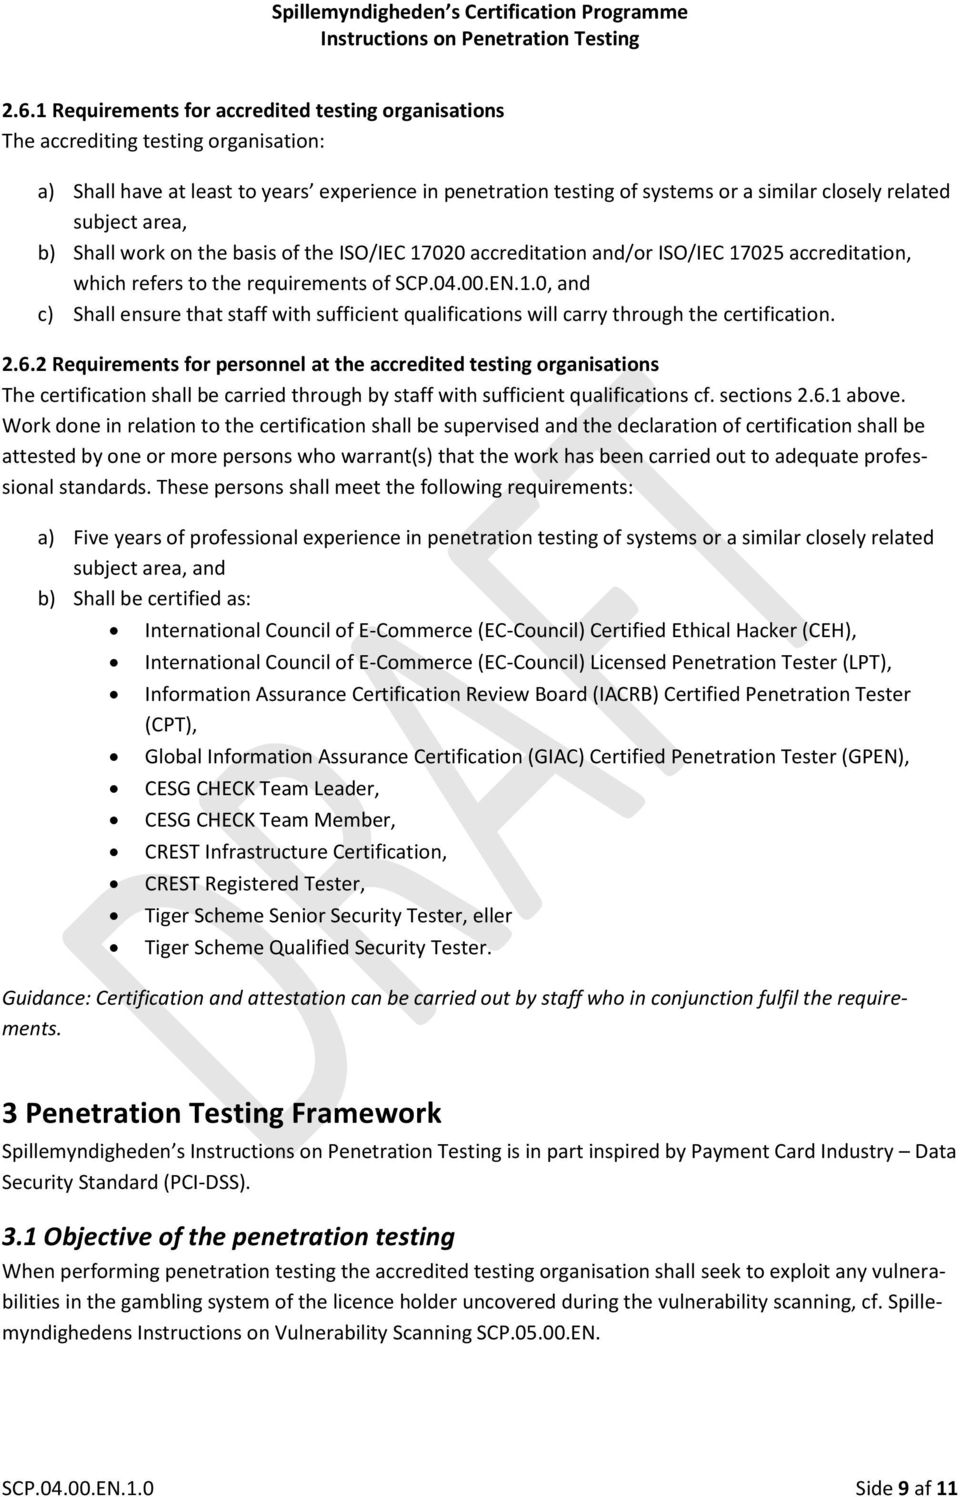 2.6.2 Requirements for personnel at the accredited testing organisations The certification shall be carried through by staff with sufficient qualifications cf. sections 2.6.1 above.